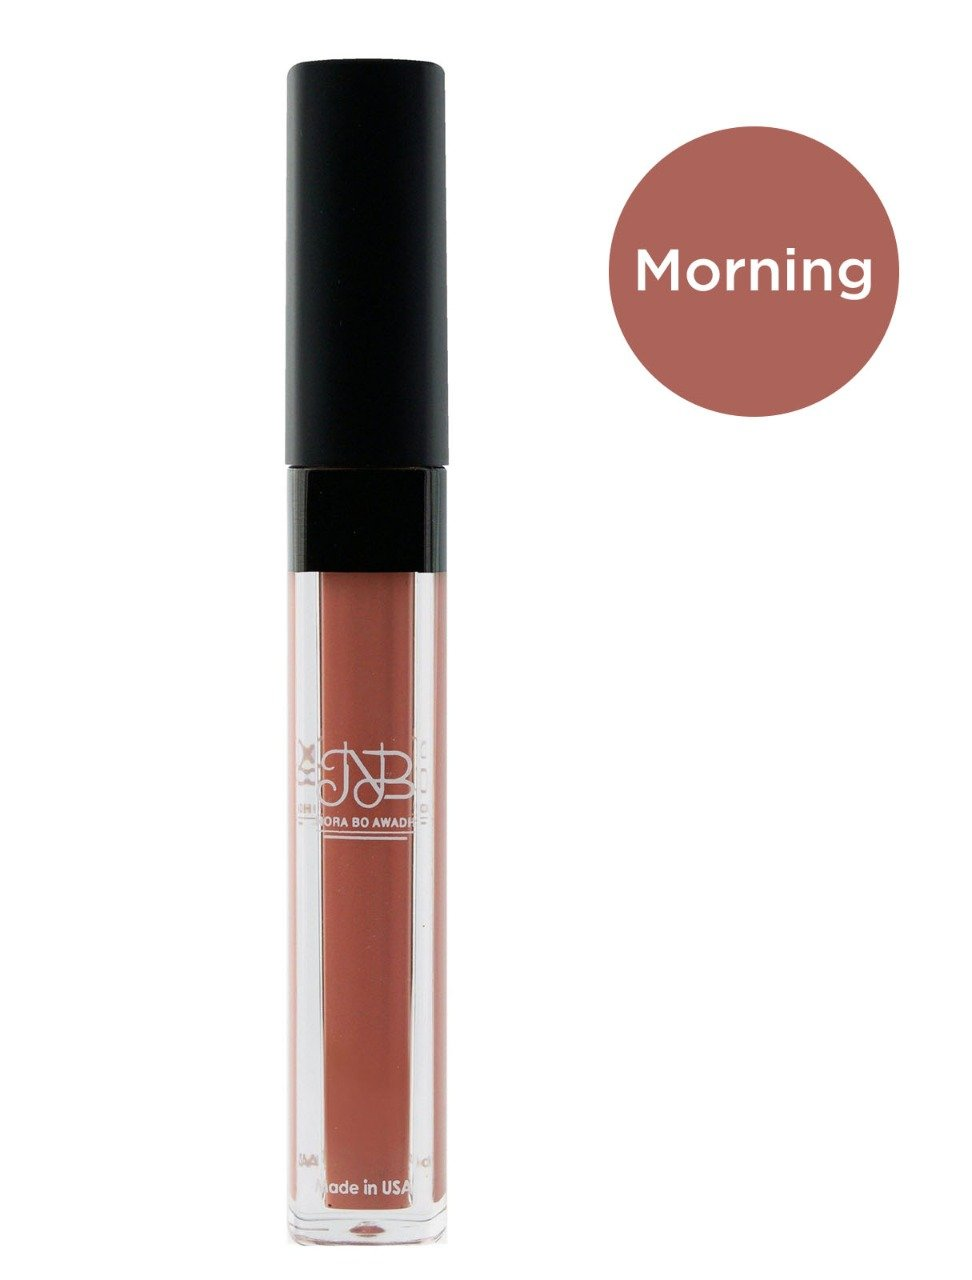 Nora Bo Awadh Morning Liquid Lipstick